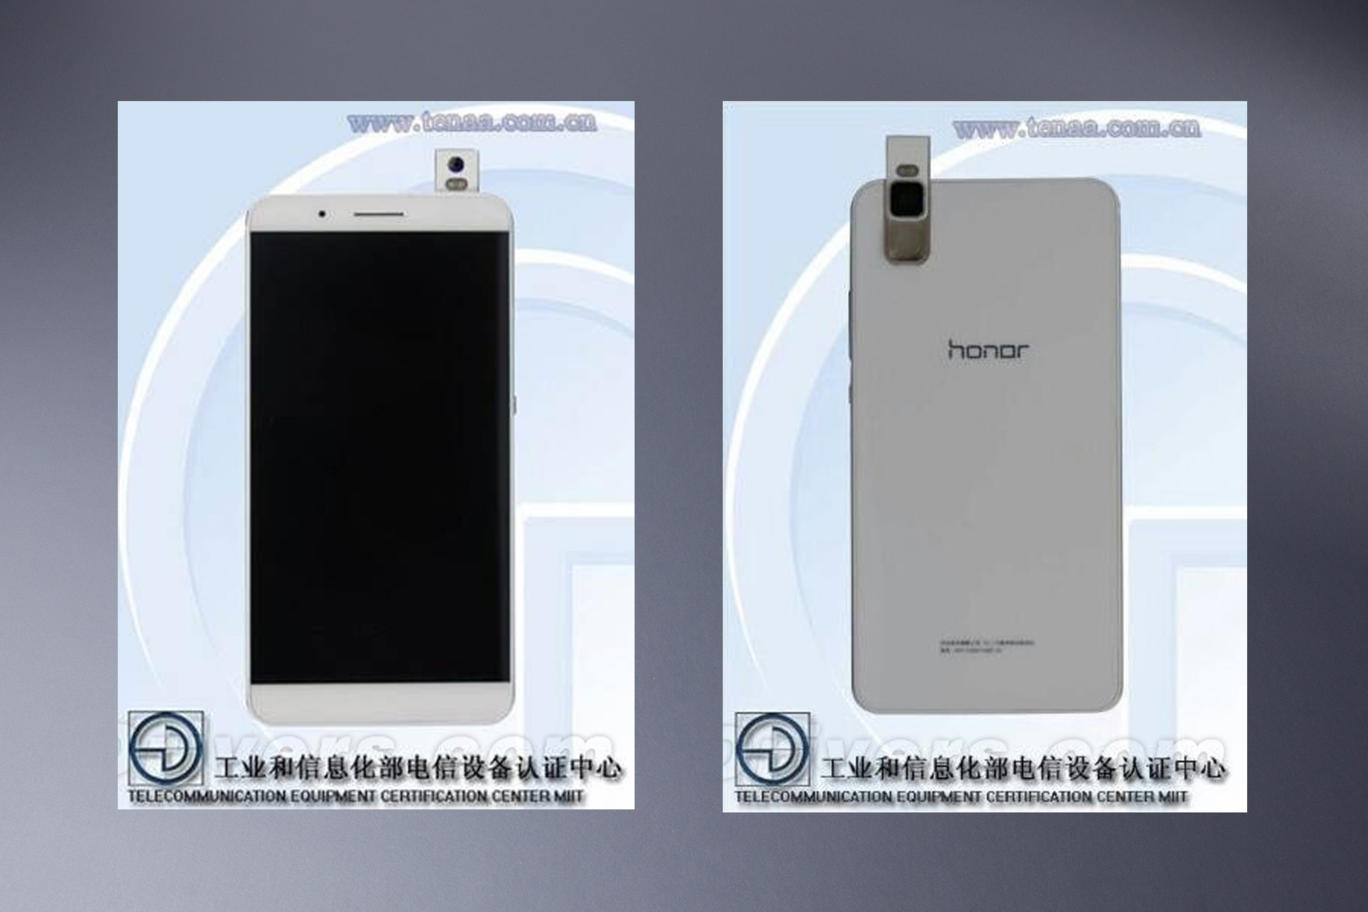 Huawei Android Smartphone